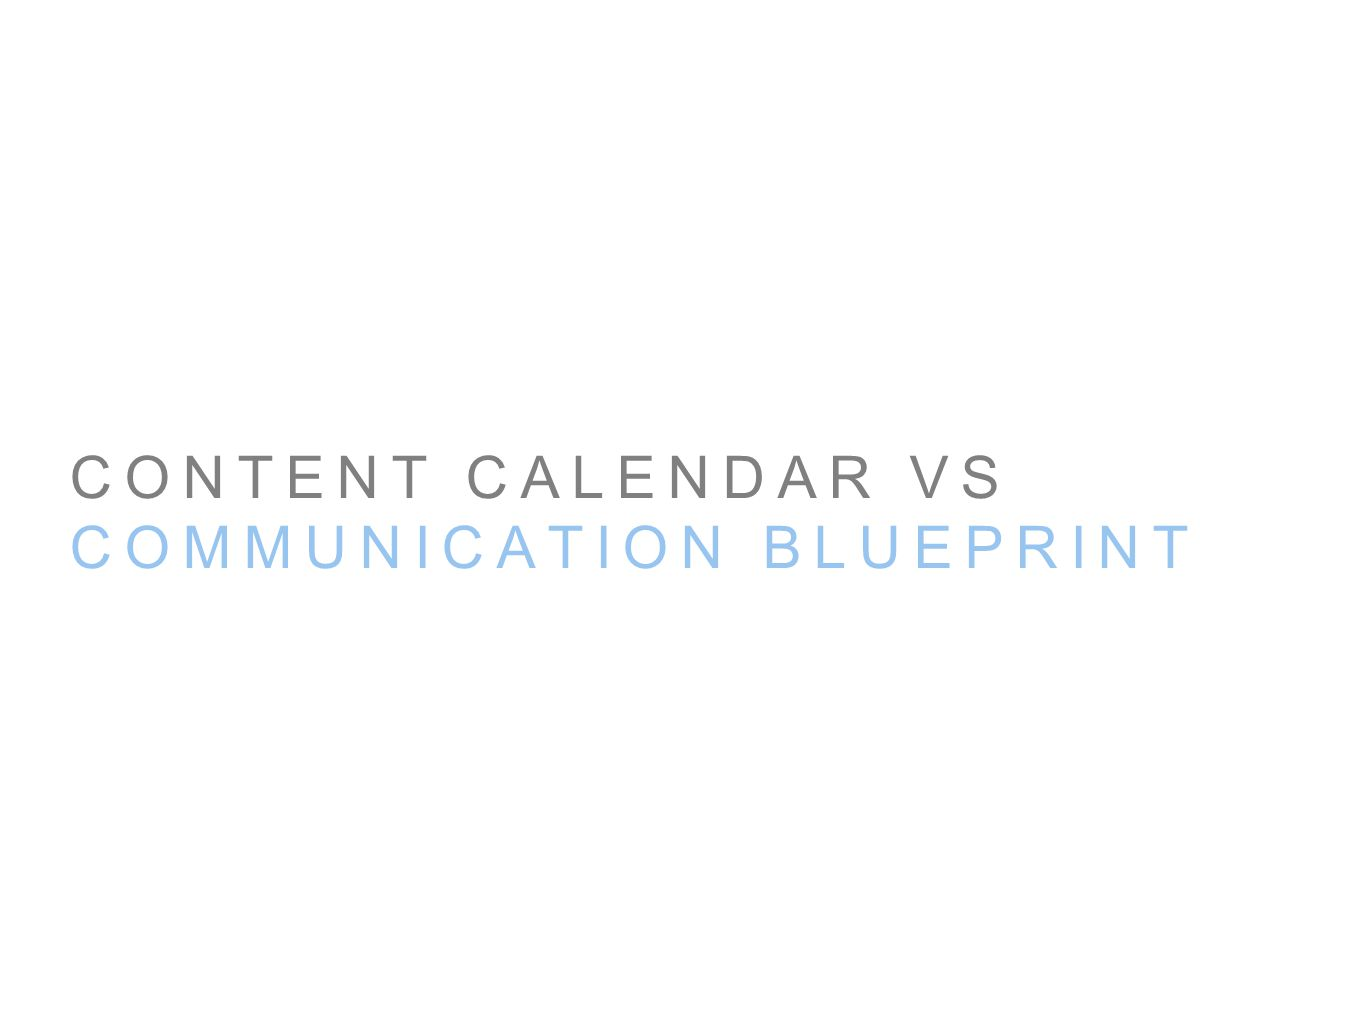 CONTENT CALENDAR VS COMMUNICATION BLUEPRINT